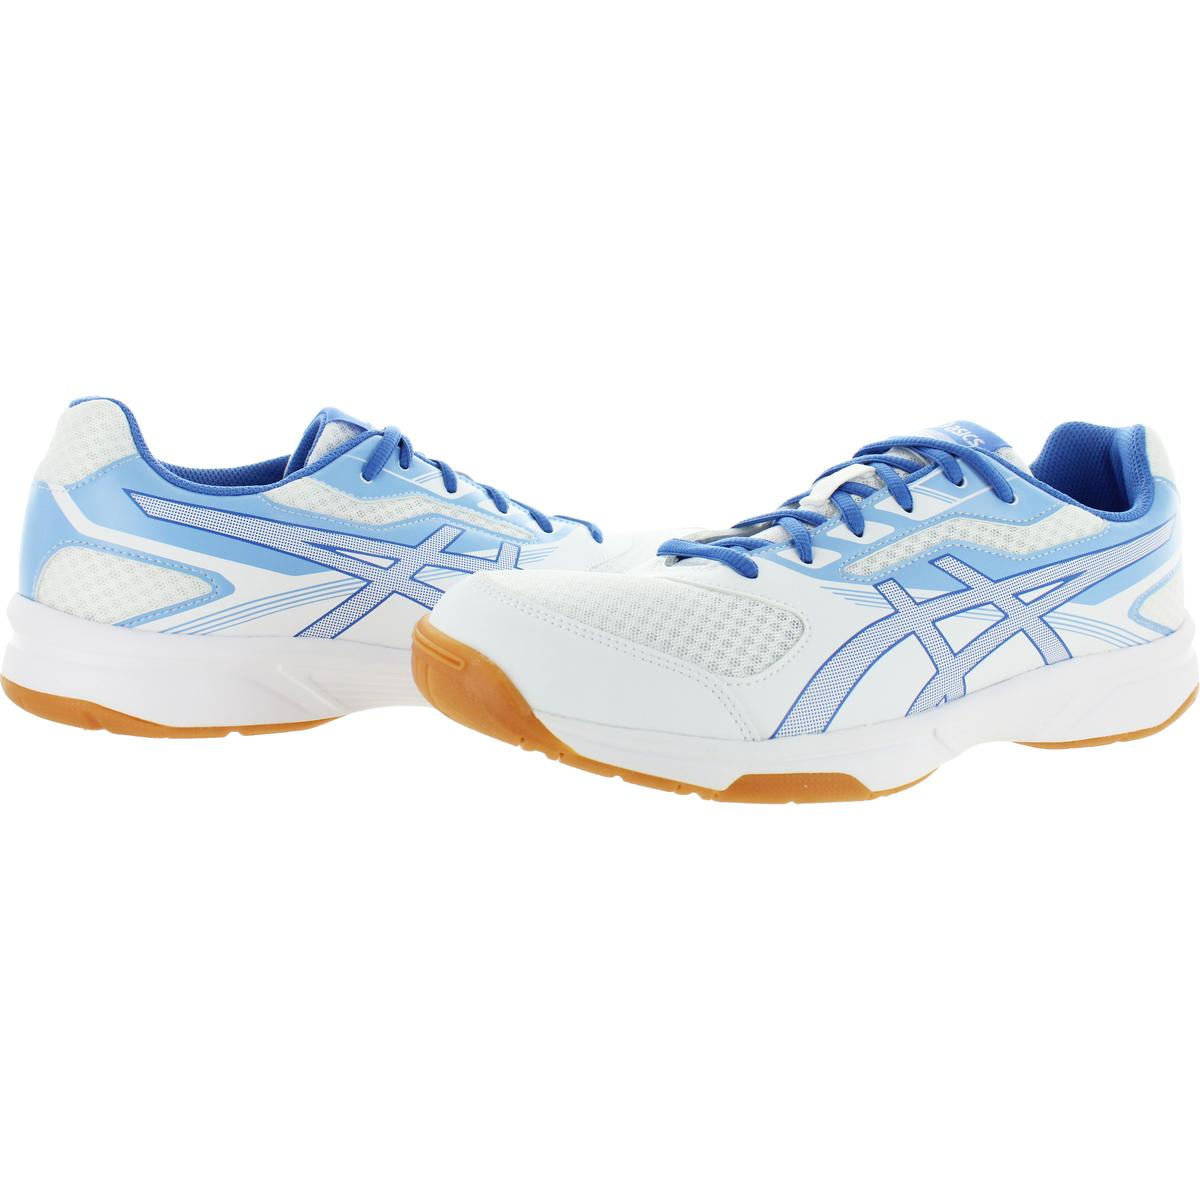 Asics-Womens-Upcourt-2-Low-Top-Trainers-Volleyball-Shoes-Sneakers-BHFO-5028 thumbnail 5